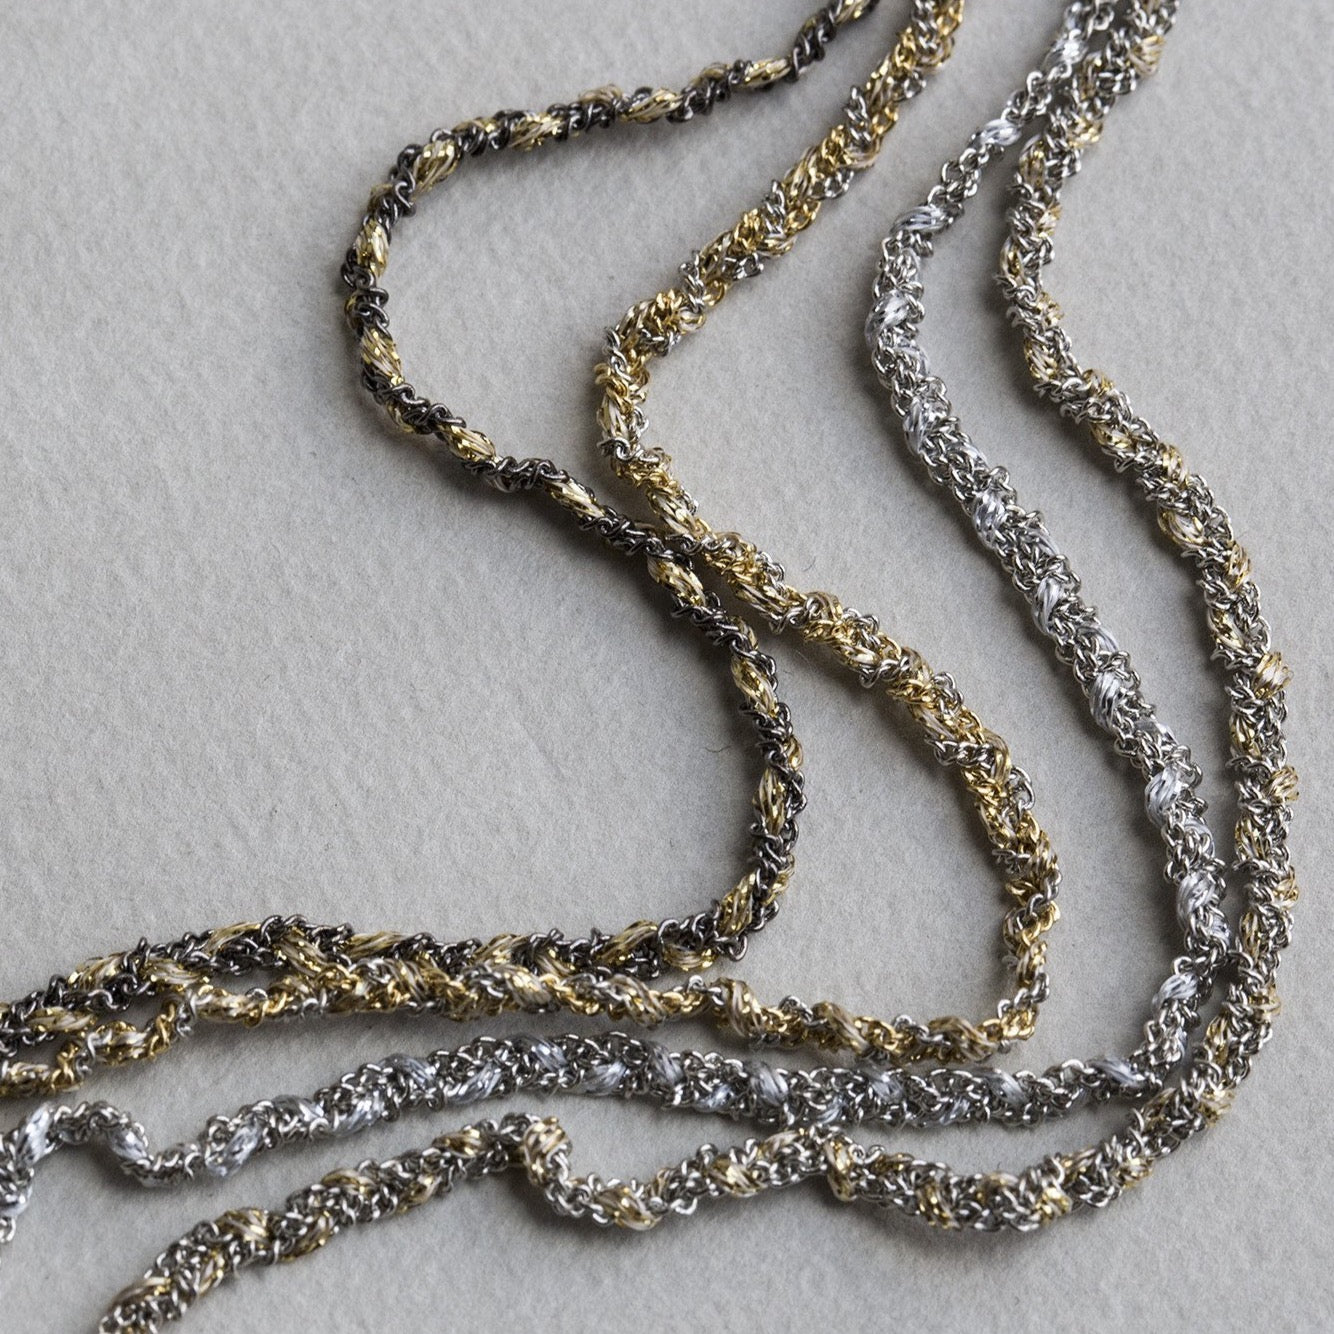 from left: black chain/gold thread, gold chain/silver thread, silver chain/silver thread and silver chain/gold thread